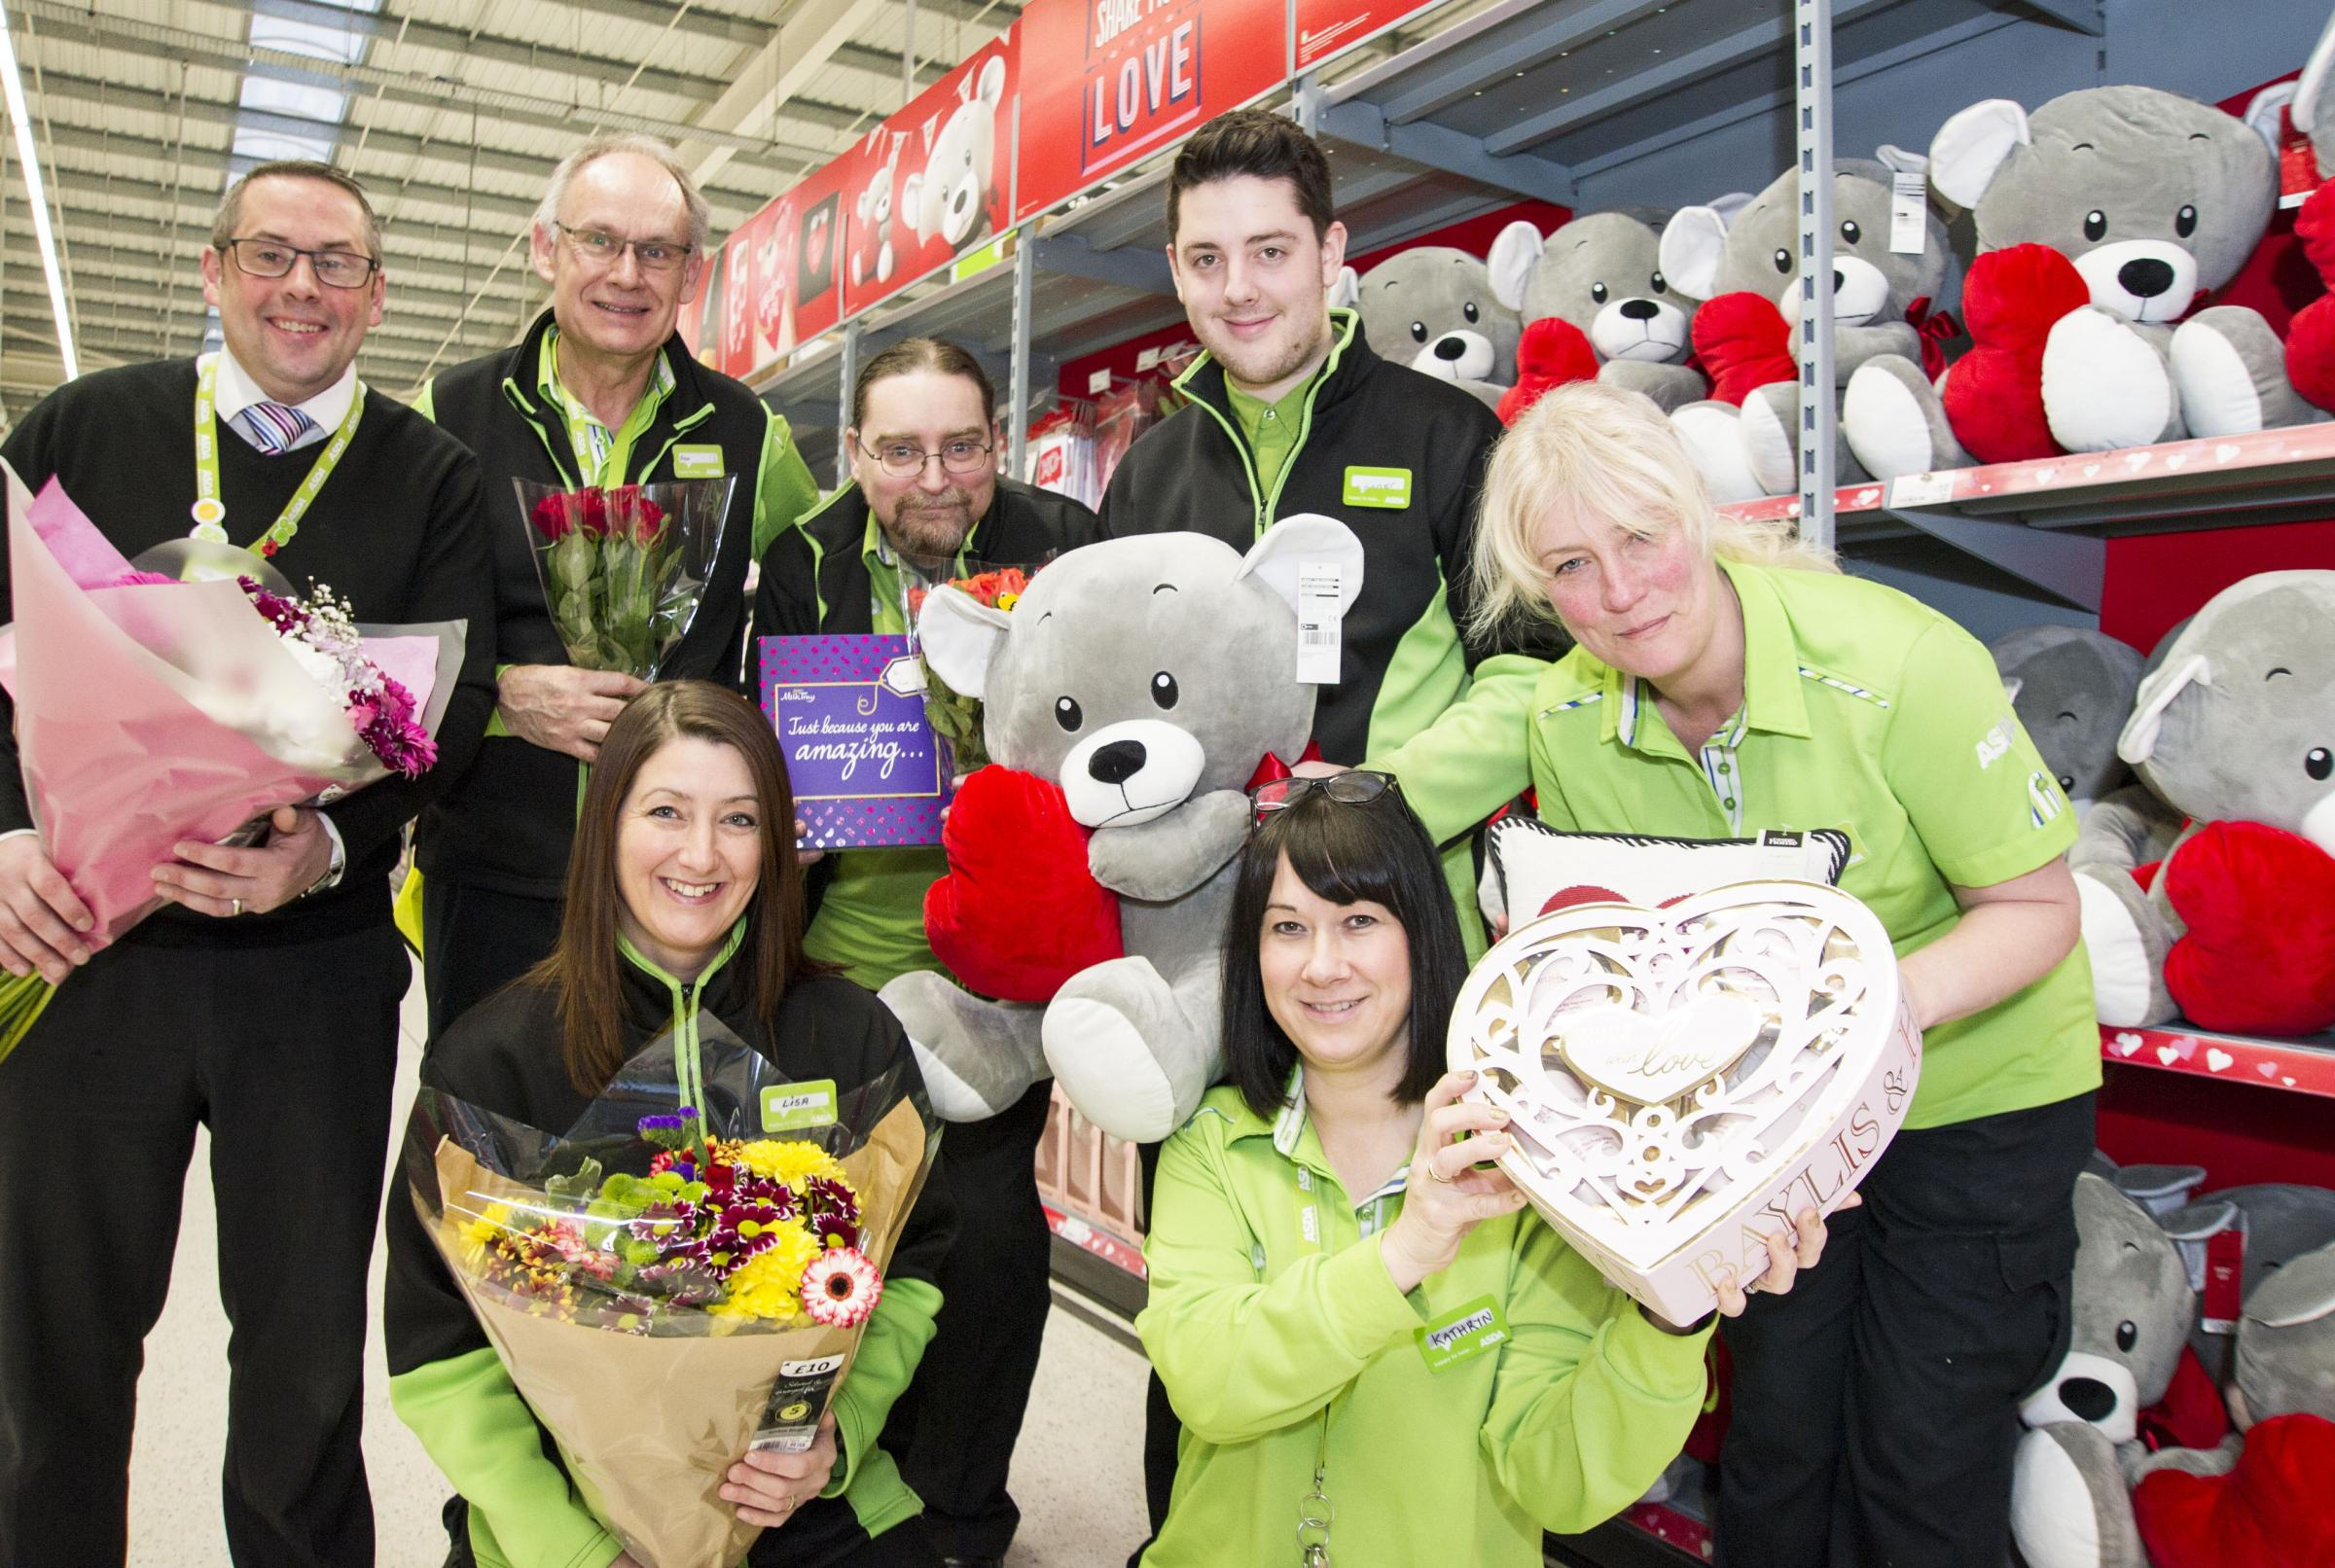 Valentines appeal at the Orbital Centre, Asda Swindon Haydon is playing cupid, with a search for the longest married couples in the area and couples who have found love in the store. .left 2 right .Pic - Colin Davies ( DGSM ), Peter Twynn, Lisa Davey, Jam